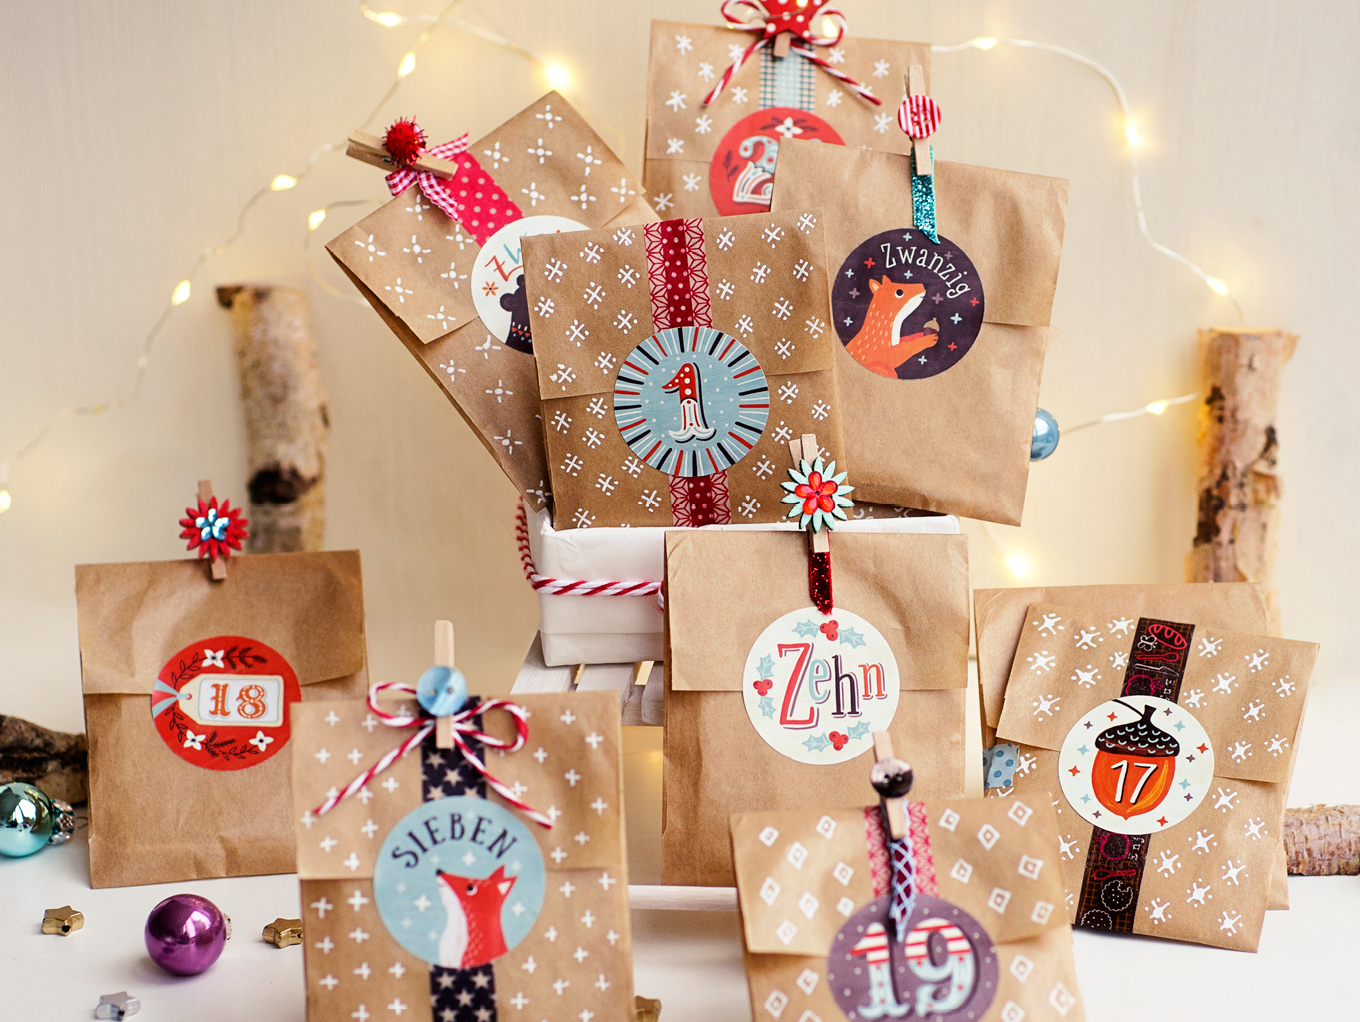 Adventskalender-DIY